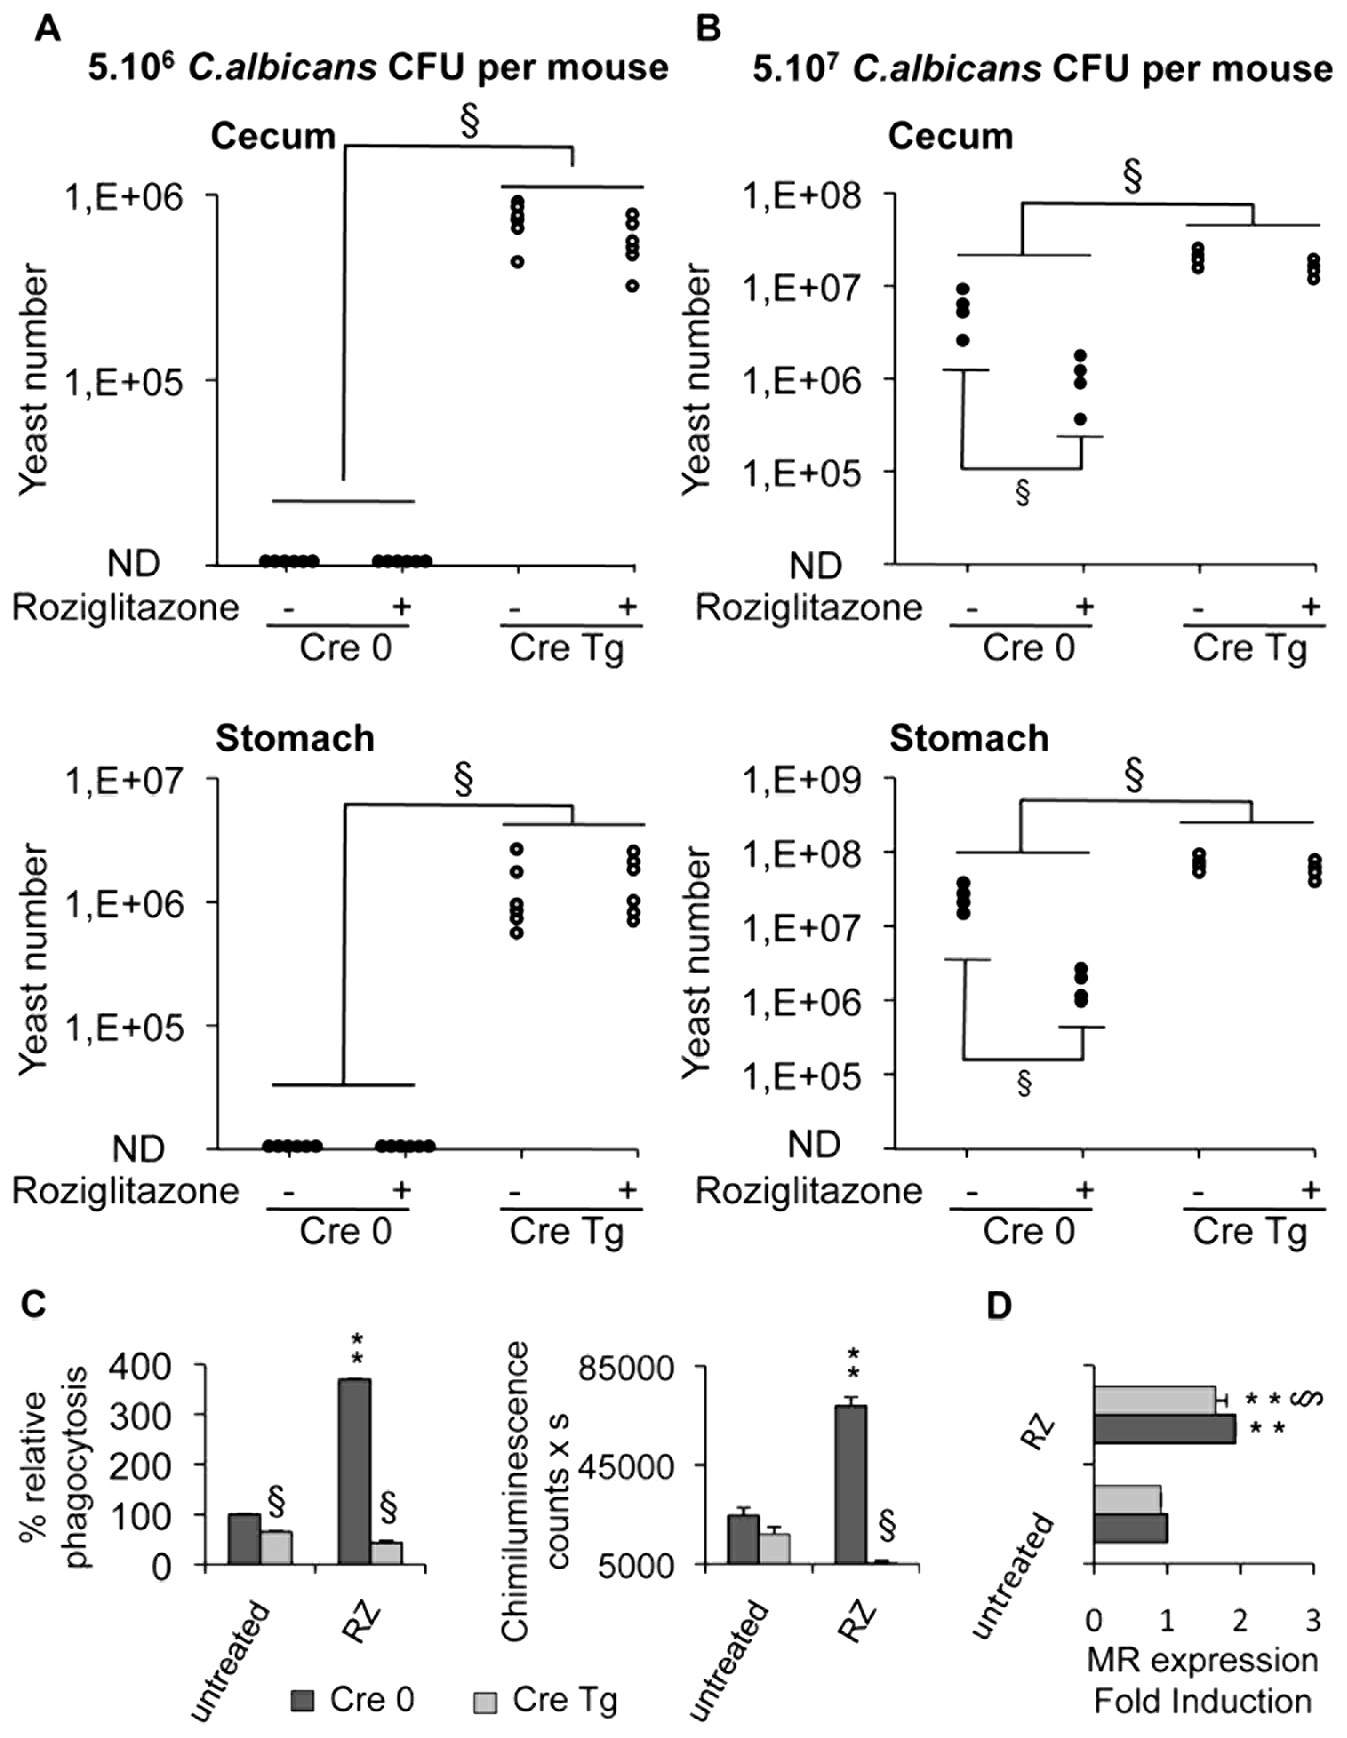 Dectin-1-knockout mice are more susceptible than Dectin-1-wildtype mice to <i>C. albicans</i> gastrointestinal infection.